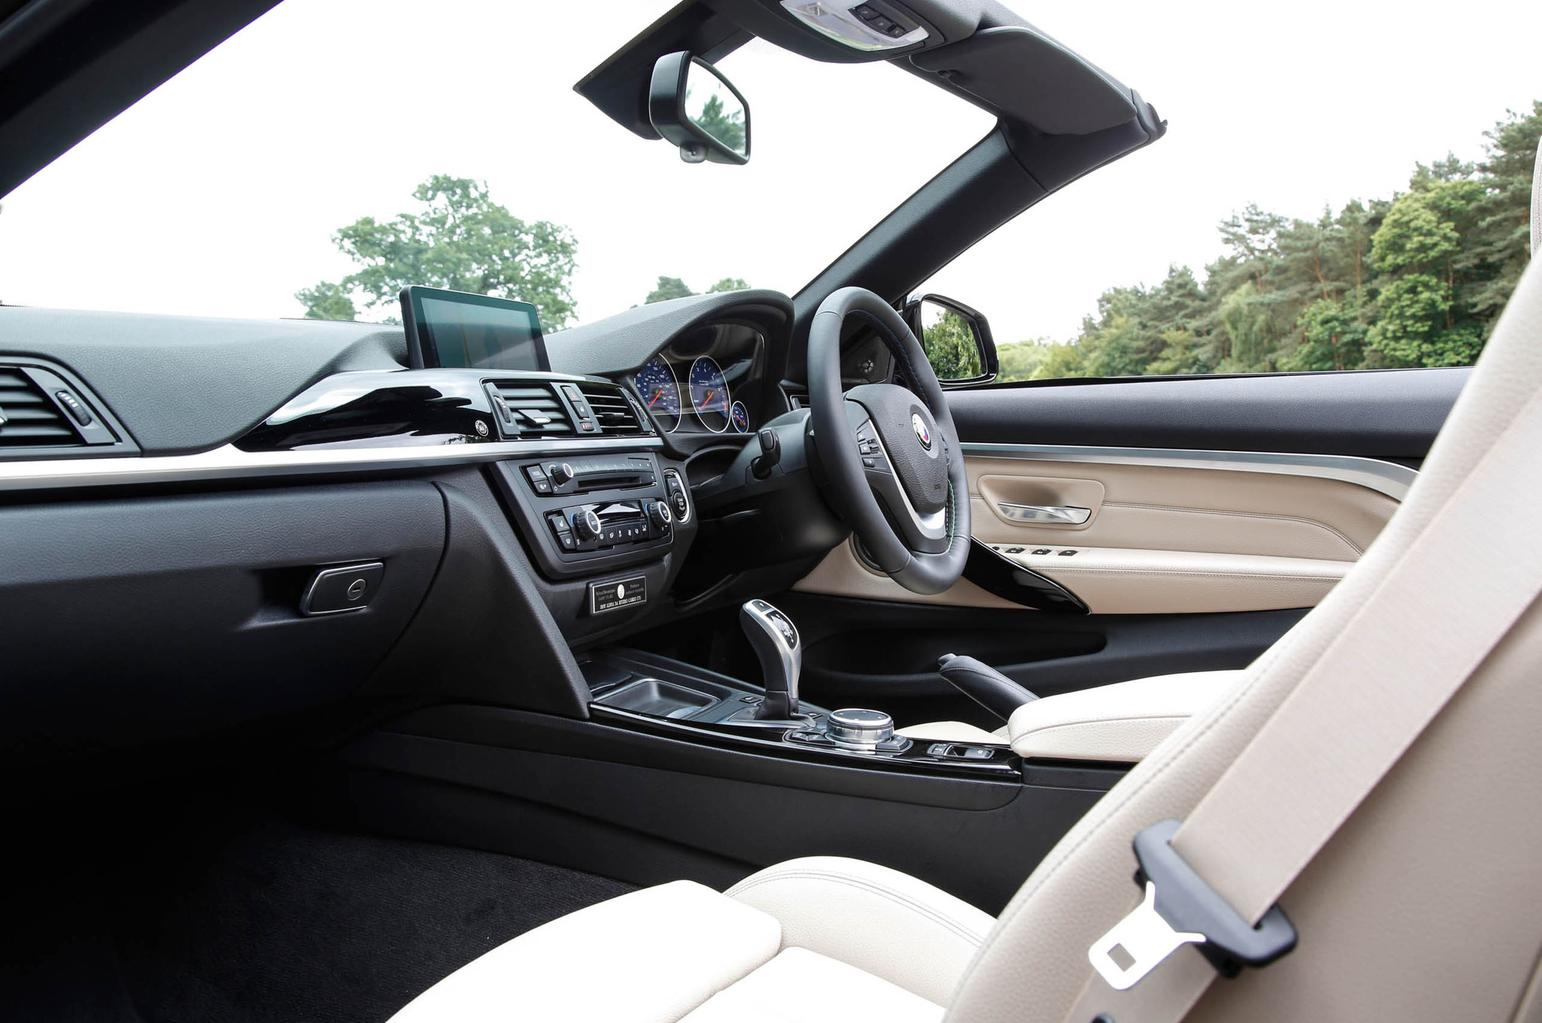 2016 Alpina B4 Biturbo Convertible review